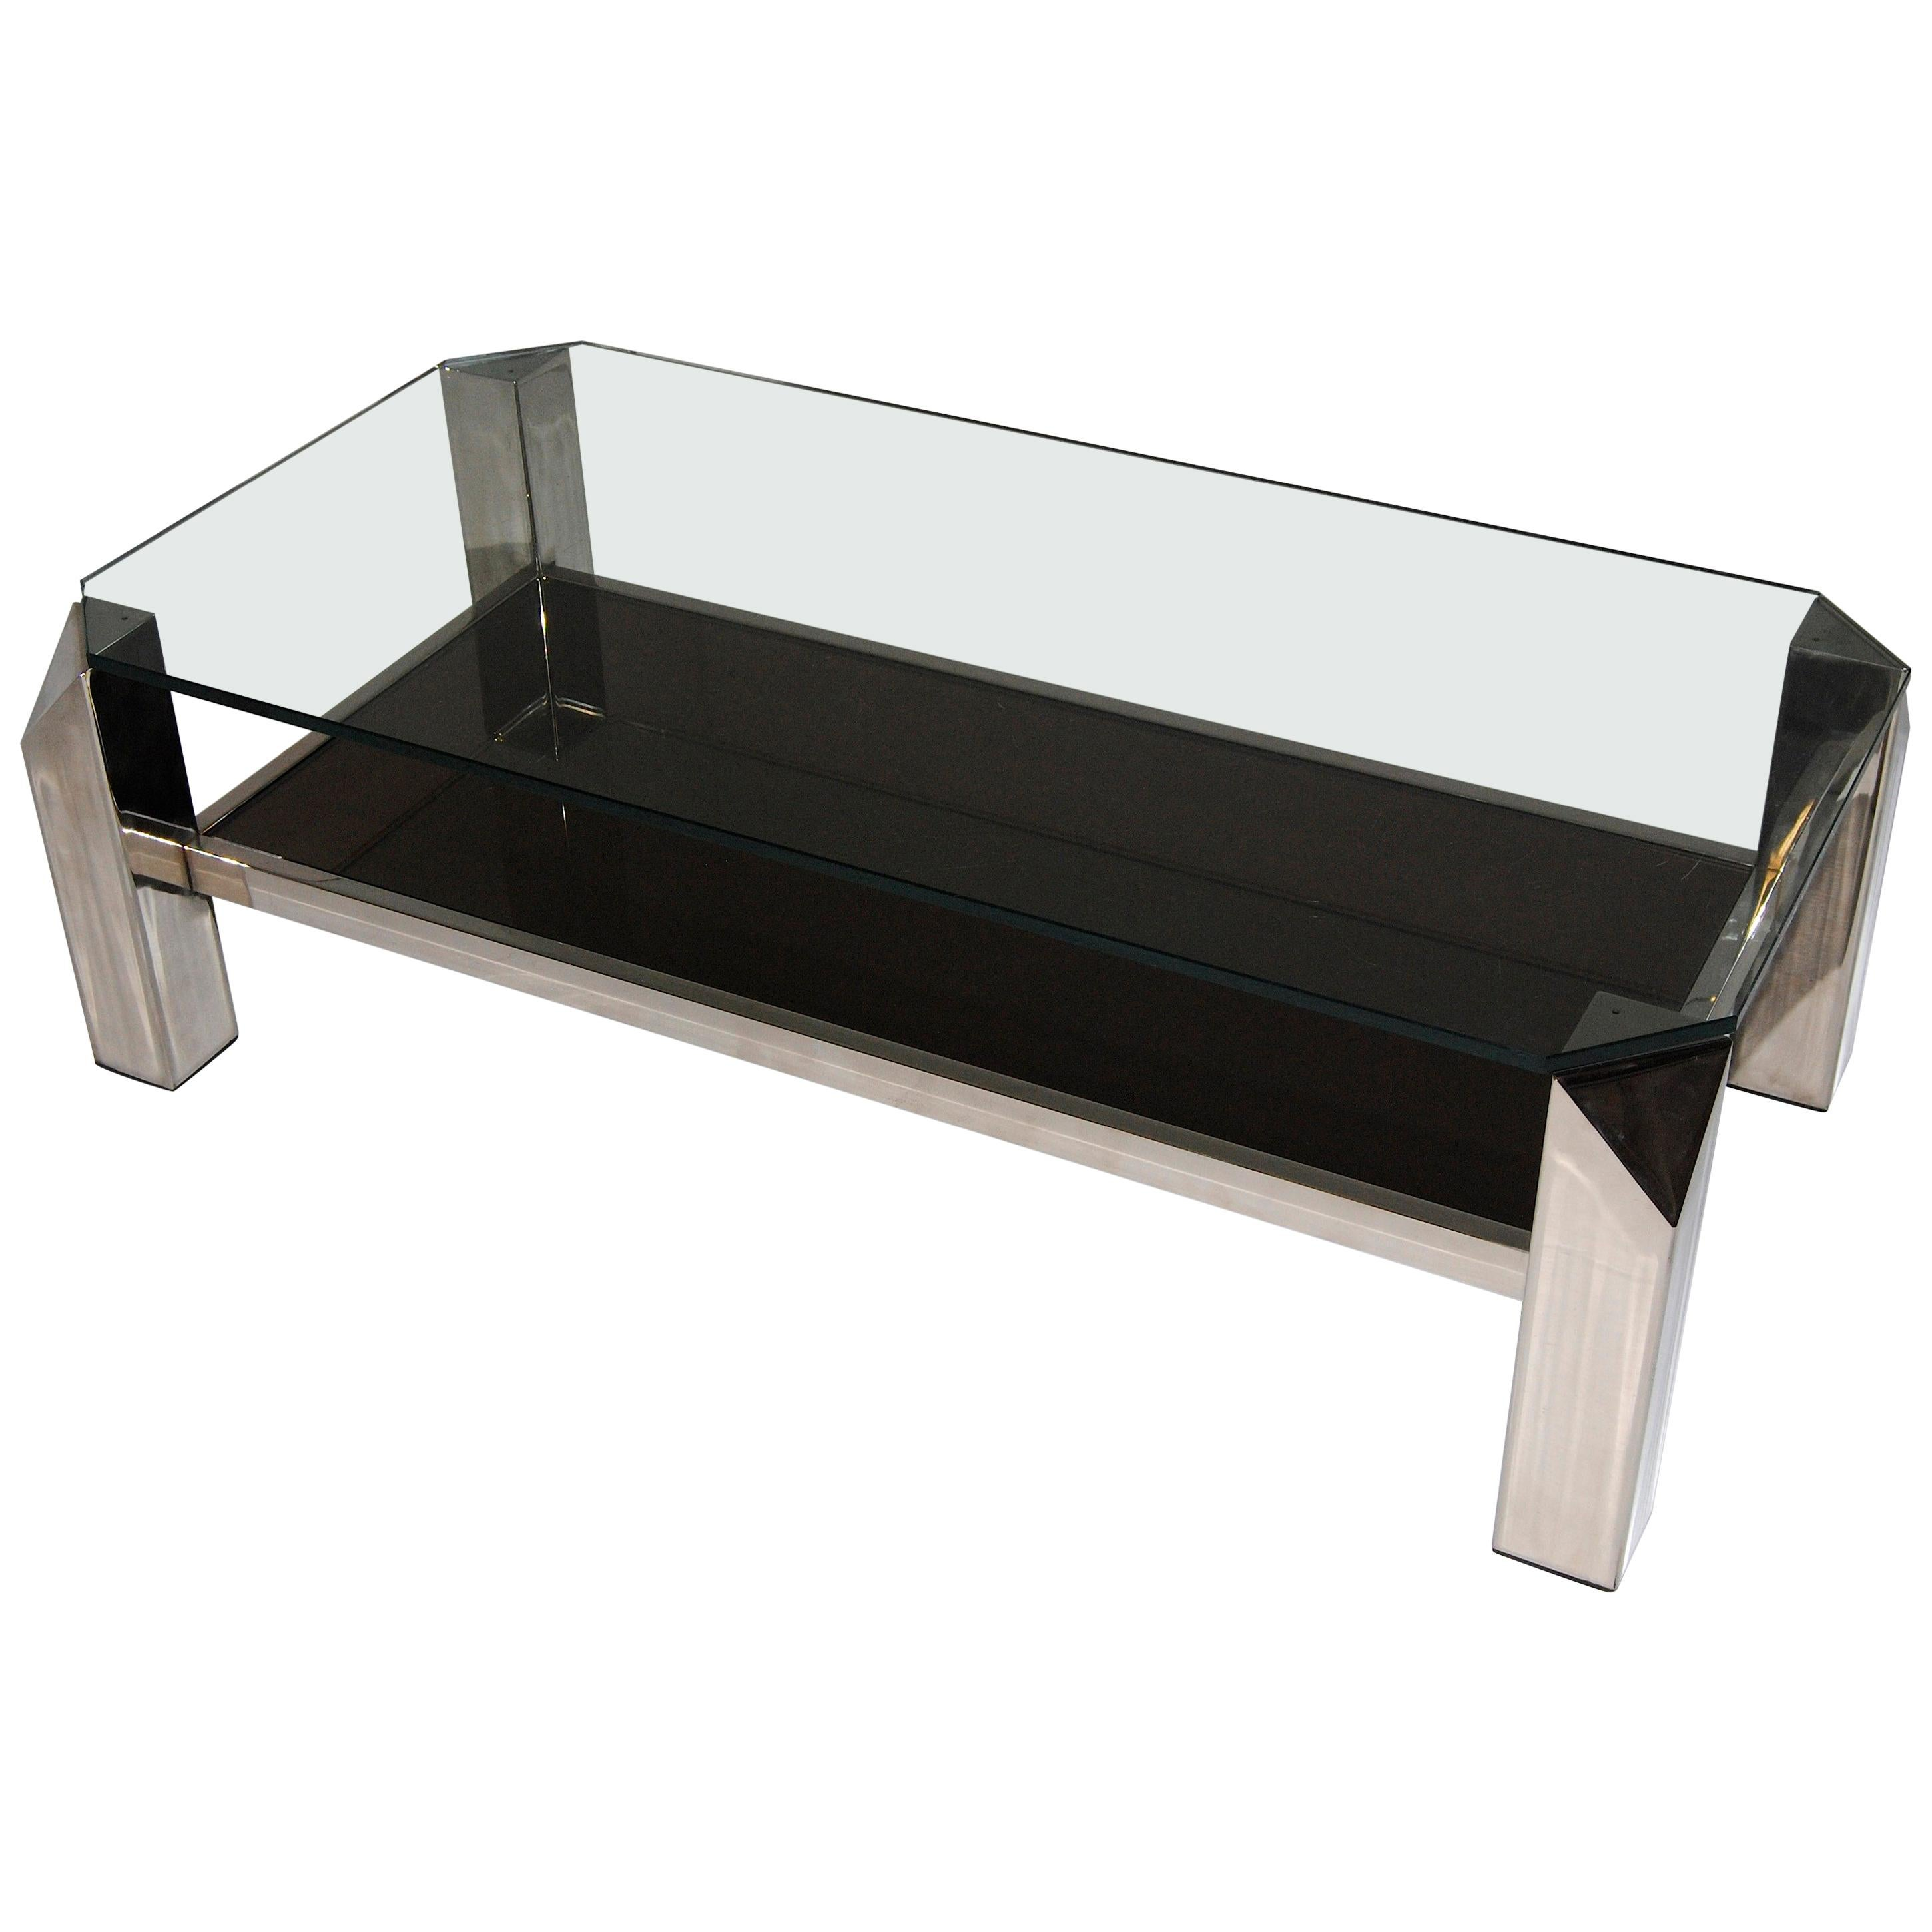 Mid-Century Modern Belgian Coffee Table with Glass Top by Belgo Chrom, 1970s